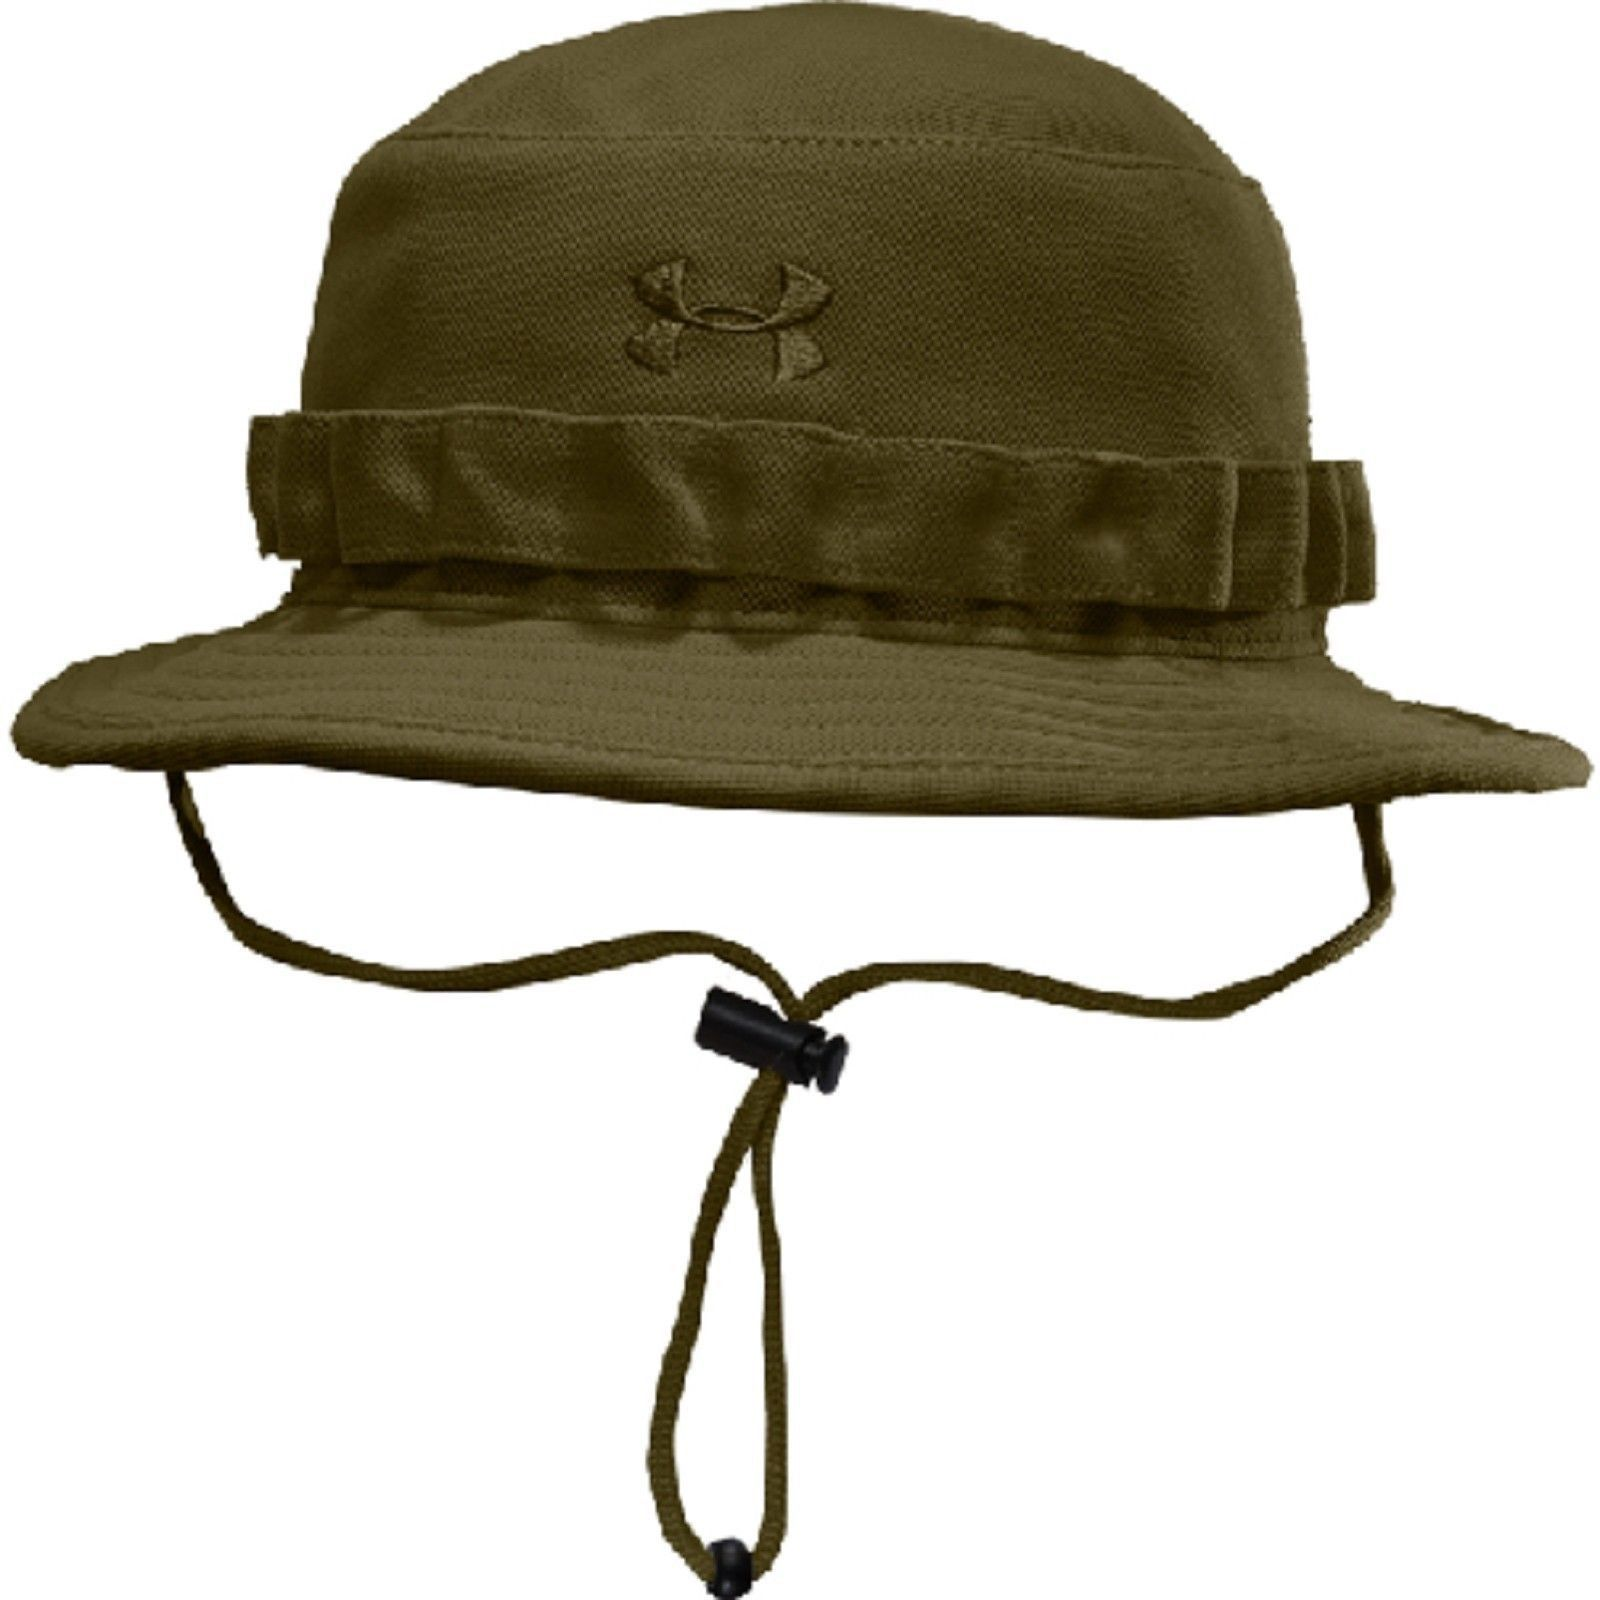 Men's Under Armour Tactical Bucket Hat - Black or OD Boonie